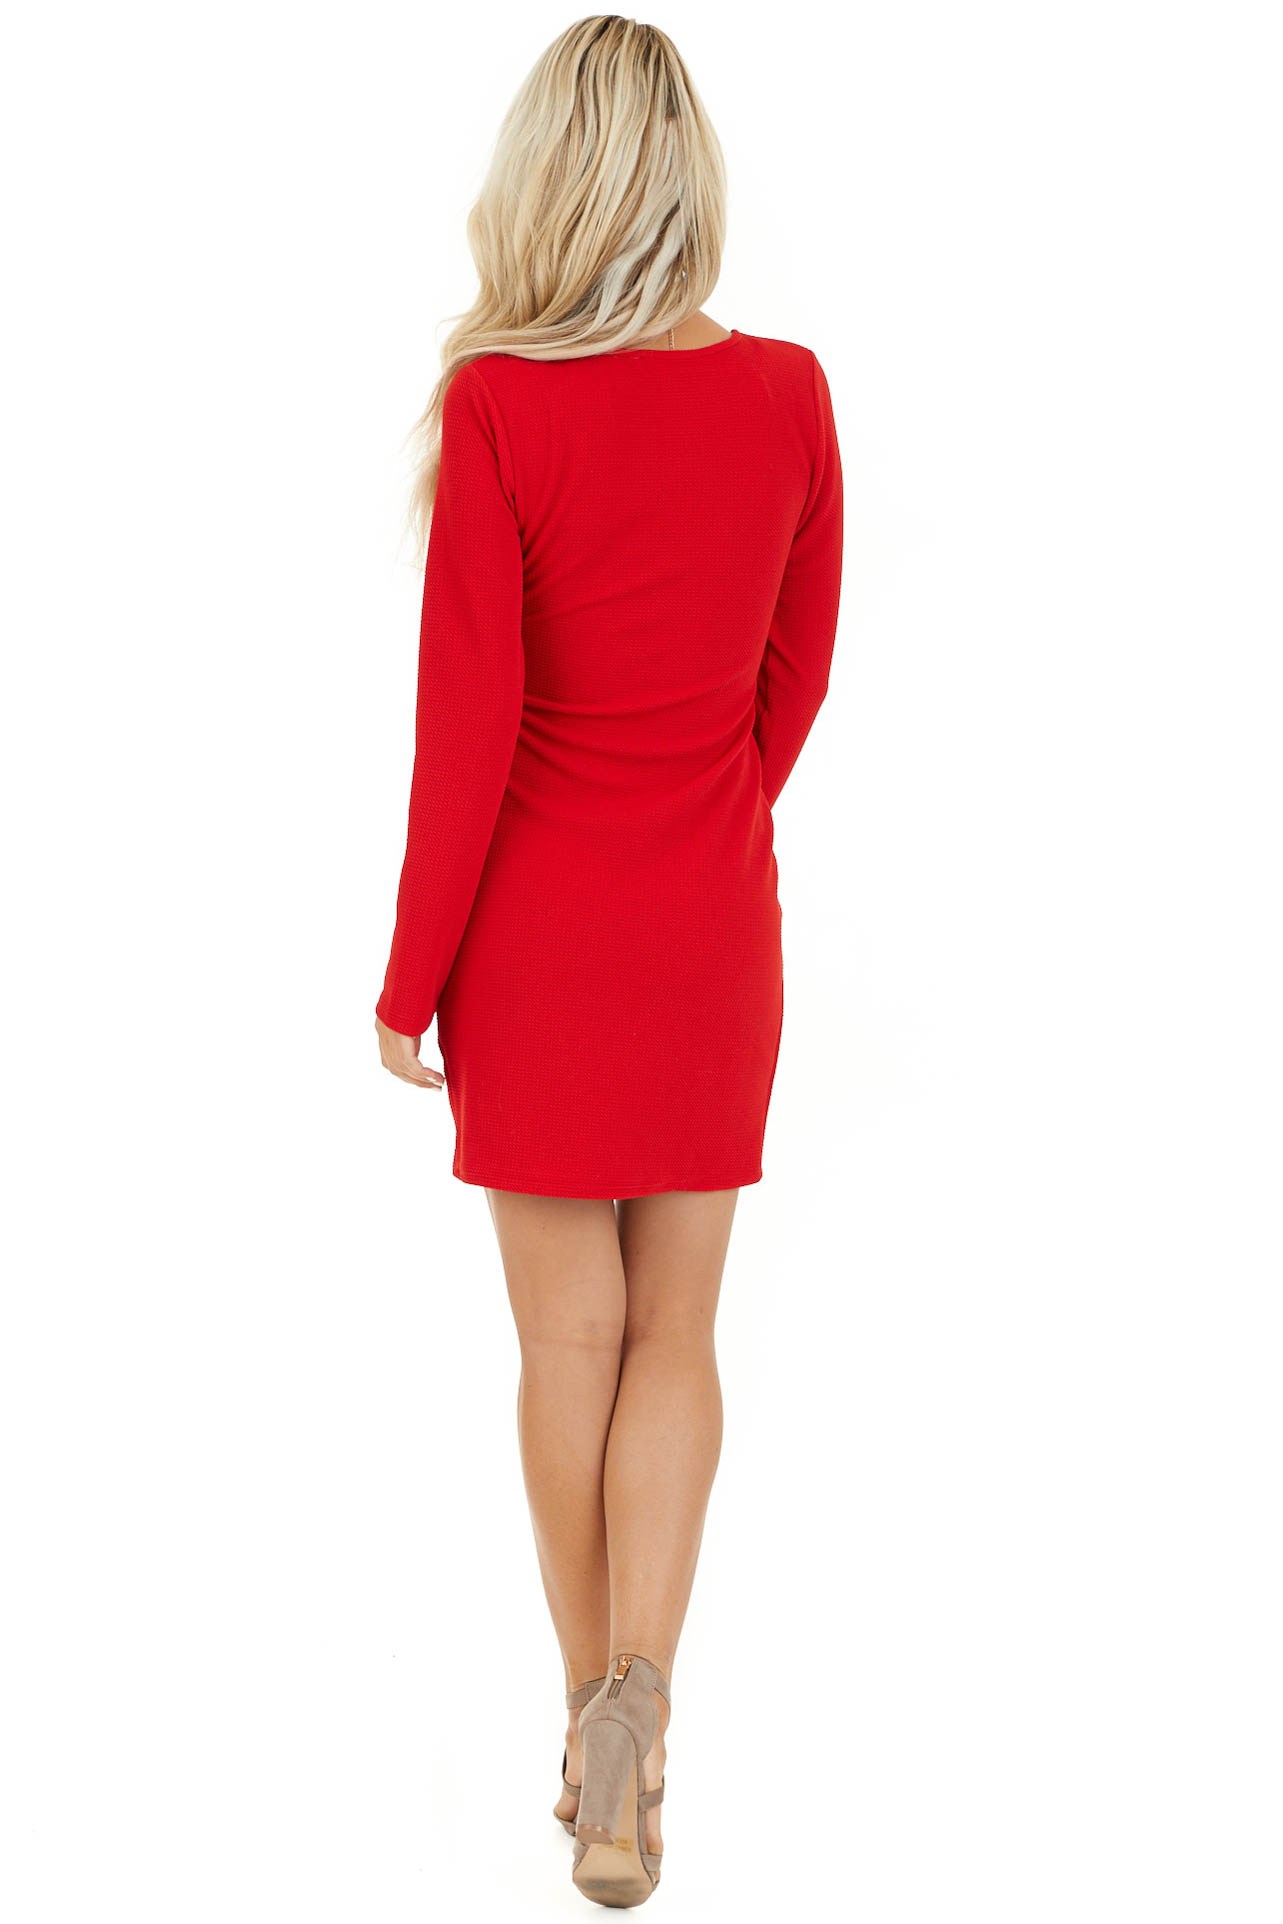 Red Surplice Mini Dress with Long Sleeves and V Neckline back full body